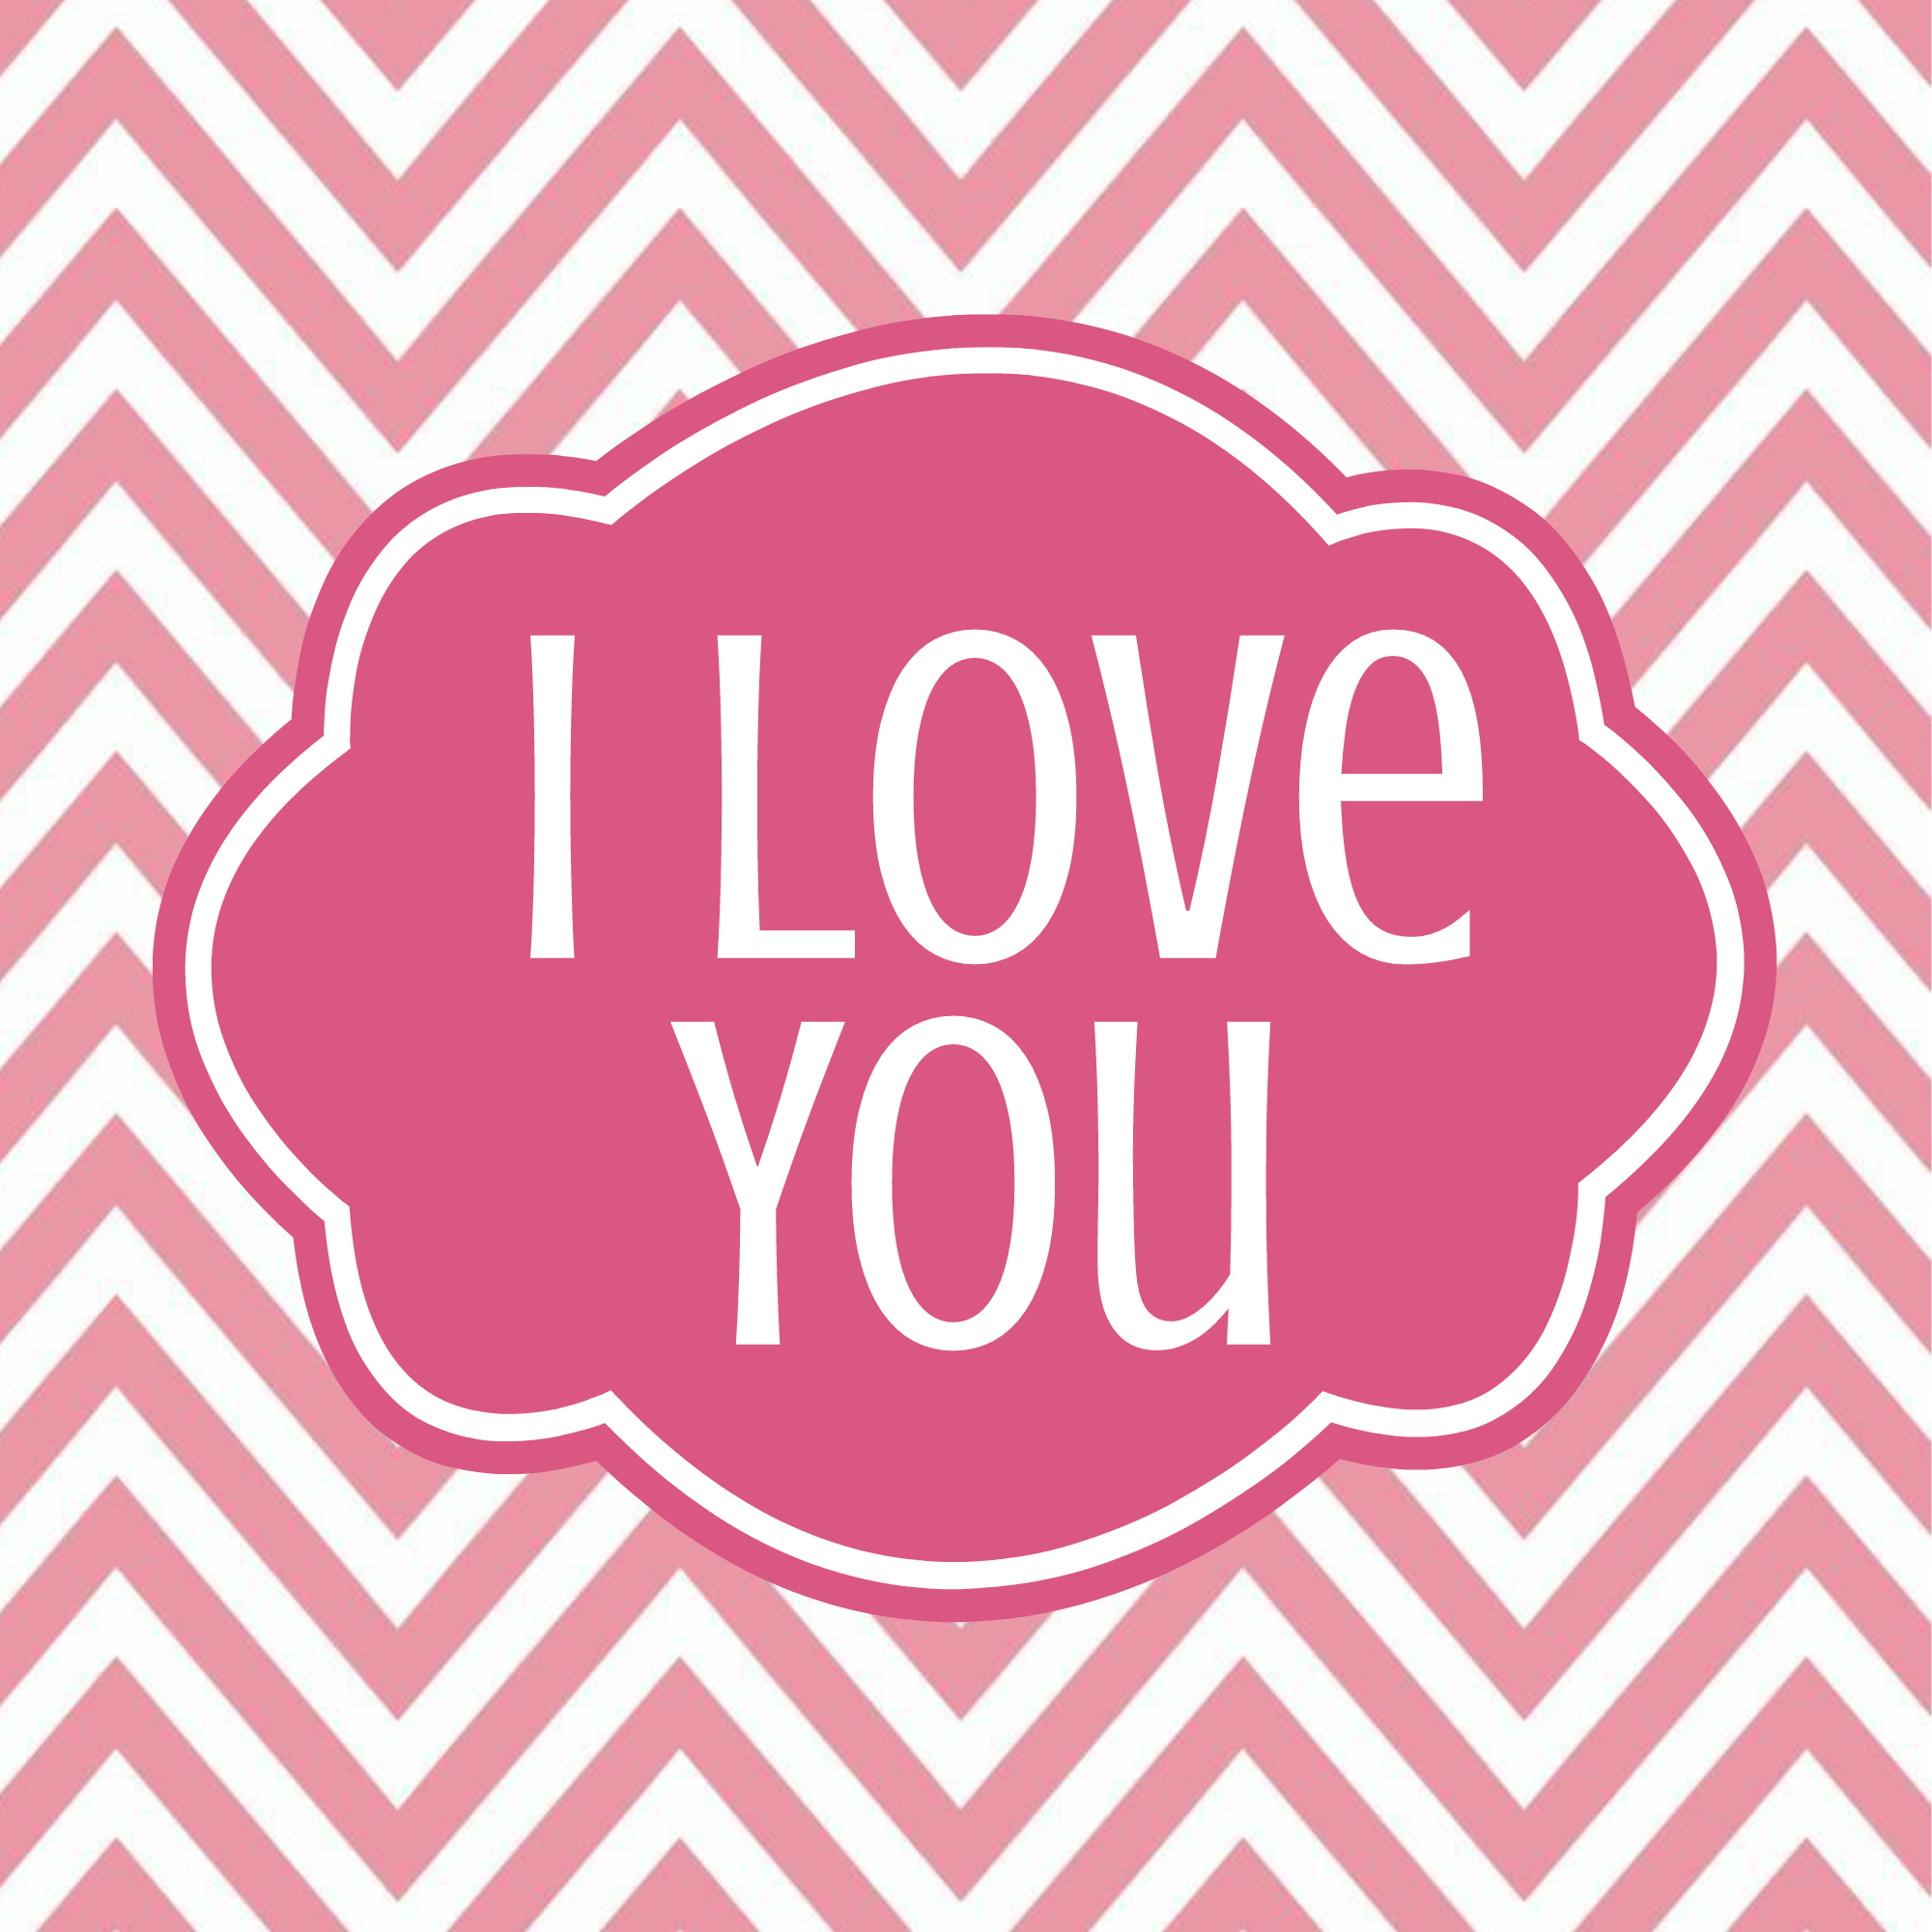 I Love You: Adorable Valentine's Day Home Decor!